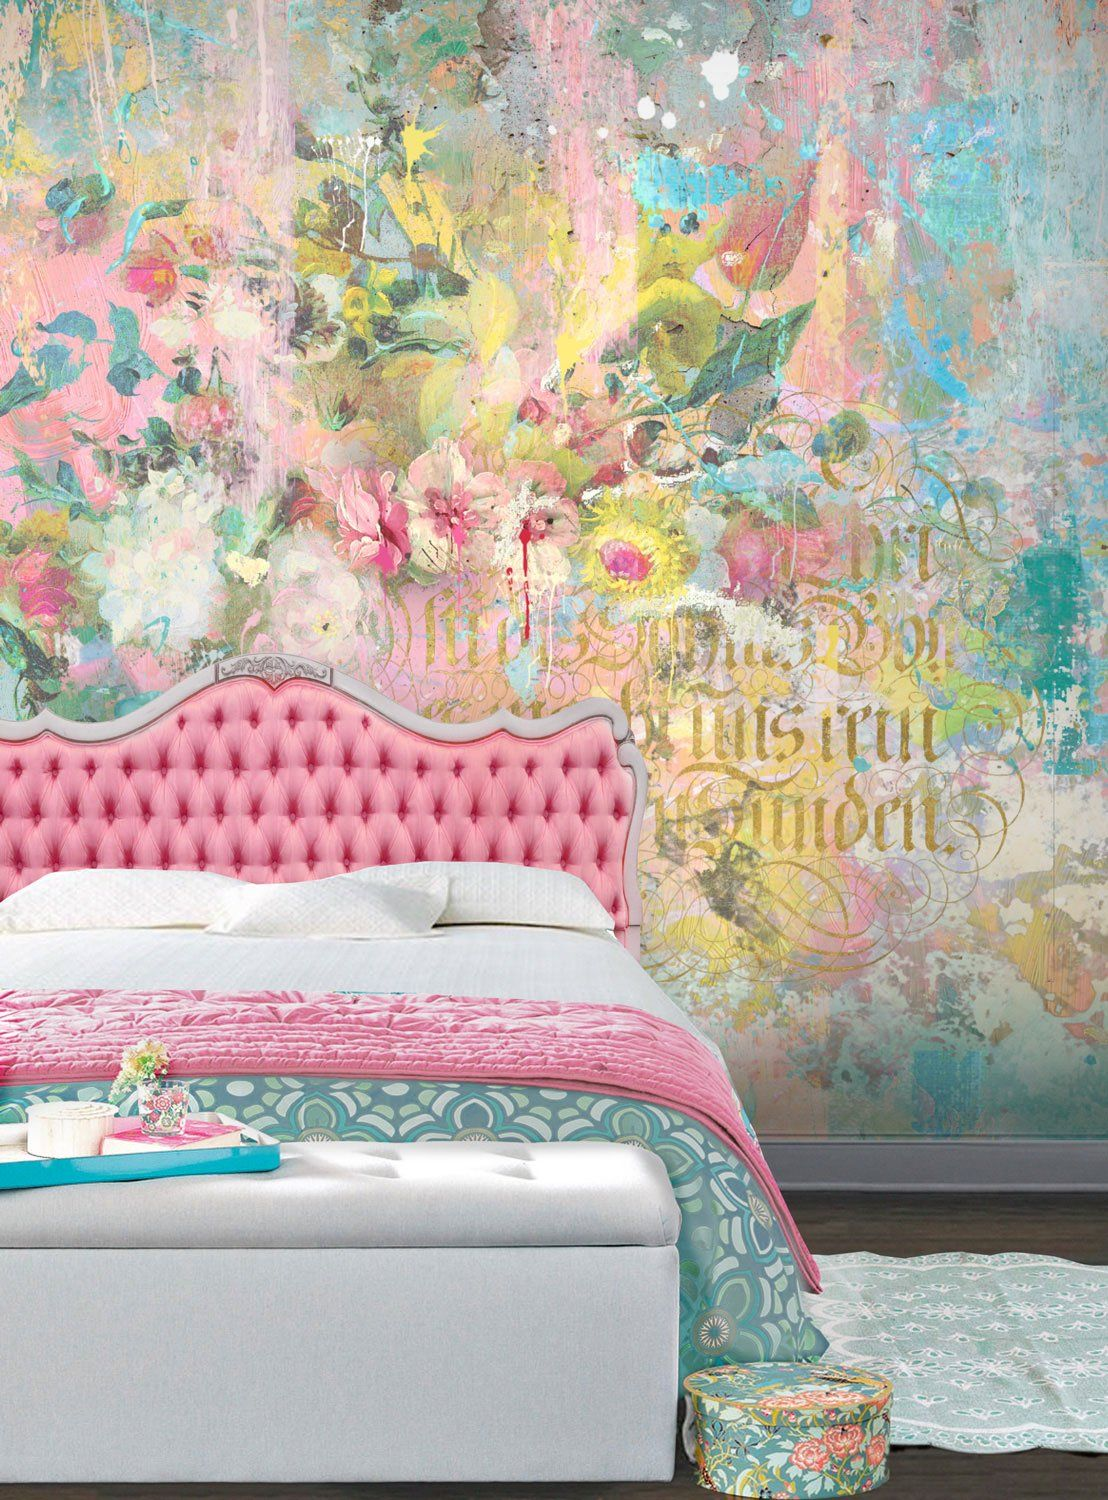 Paint Gilt Wall Mural Teenager S Room By Back To The Wall Back To The Wall Wall Murals Mural Mural Wallpaper